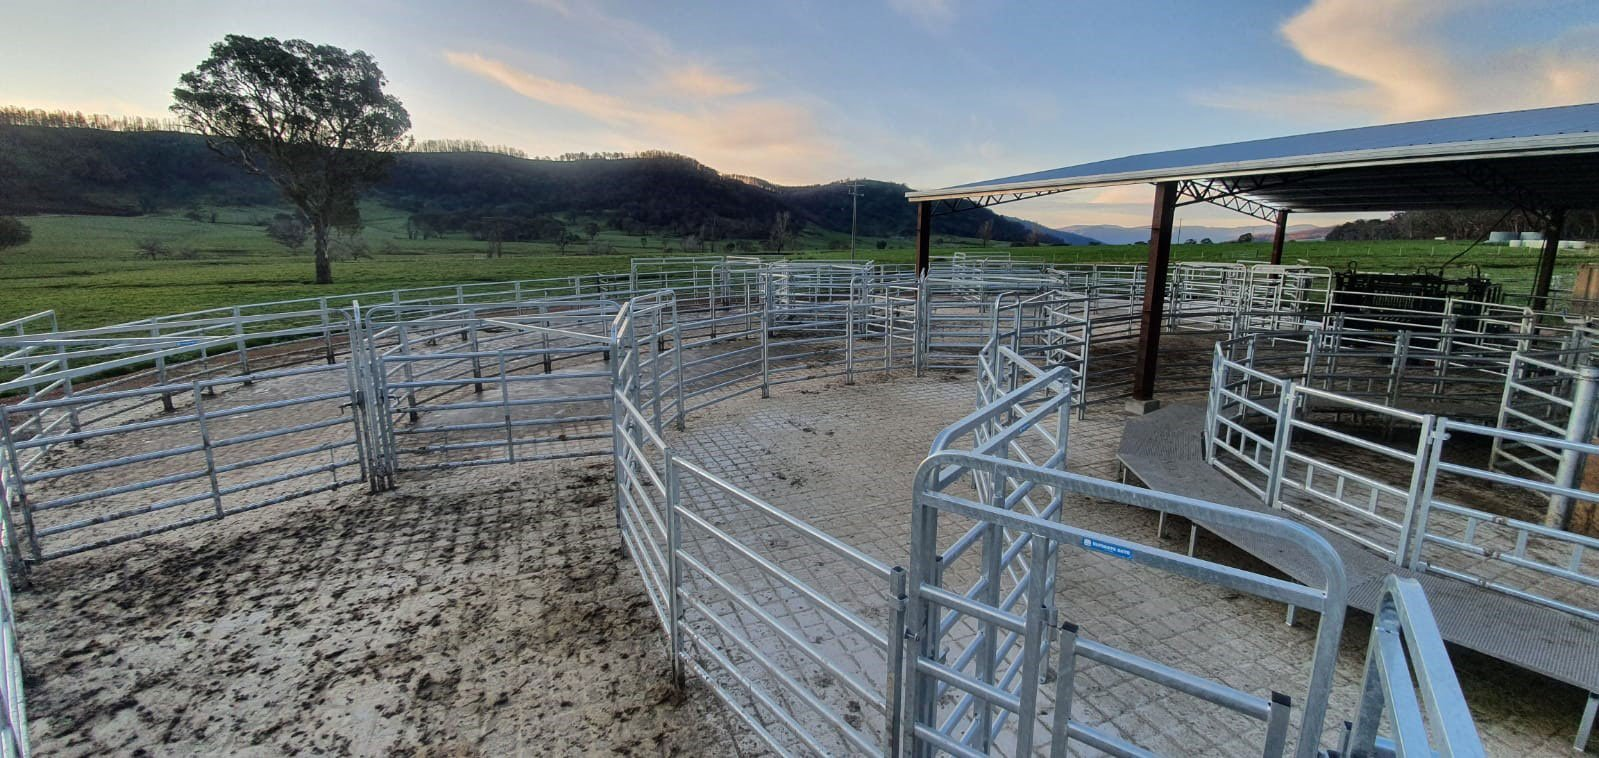 With our new system (Te Pari Cattle Yard's), Its a one person job and it couldn't be easier